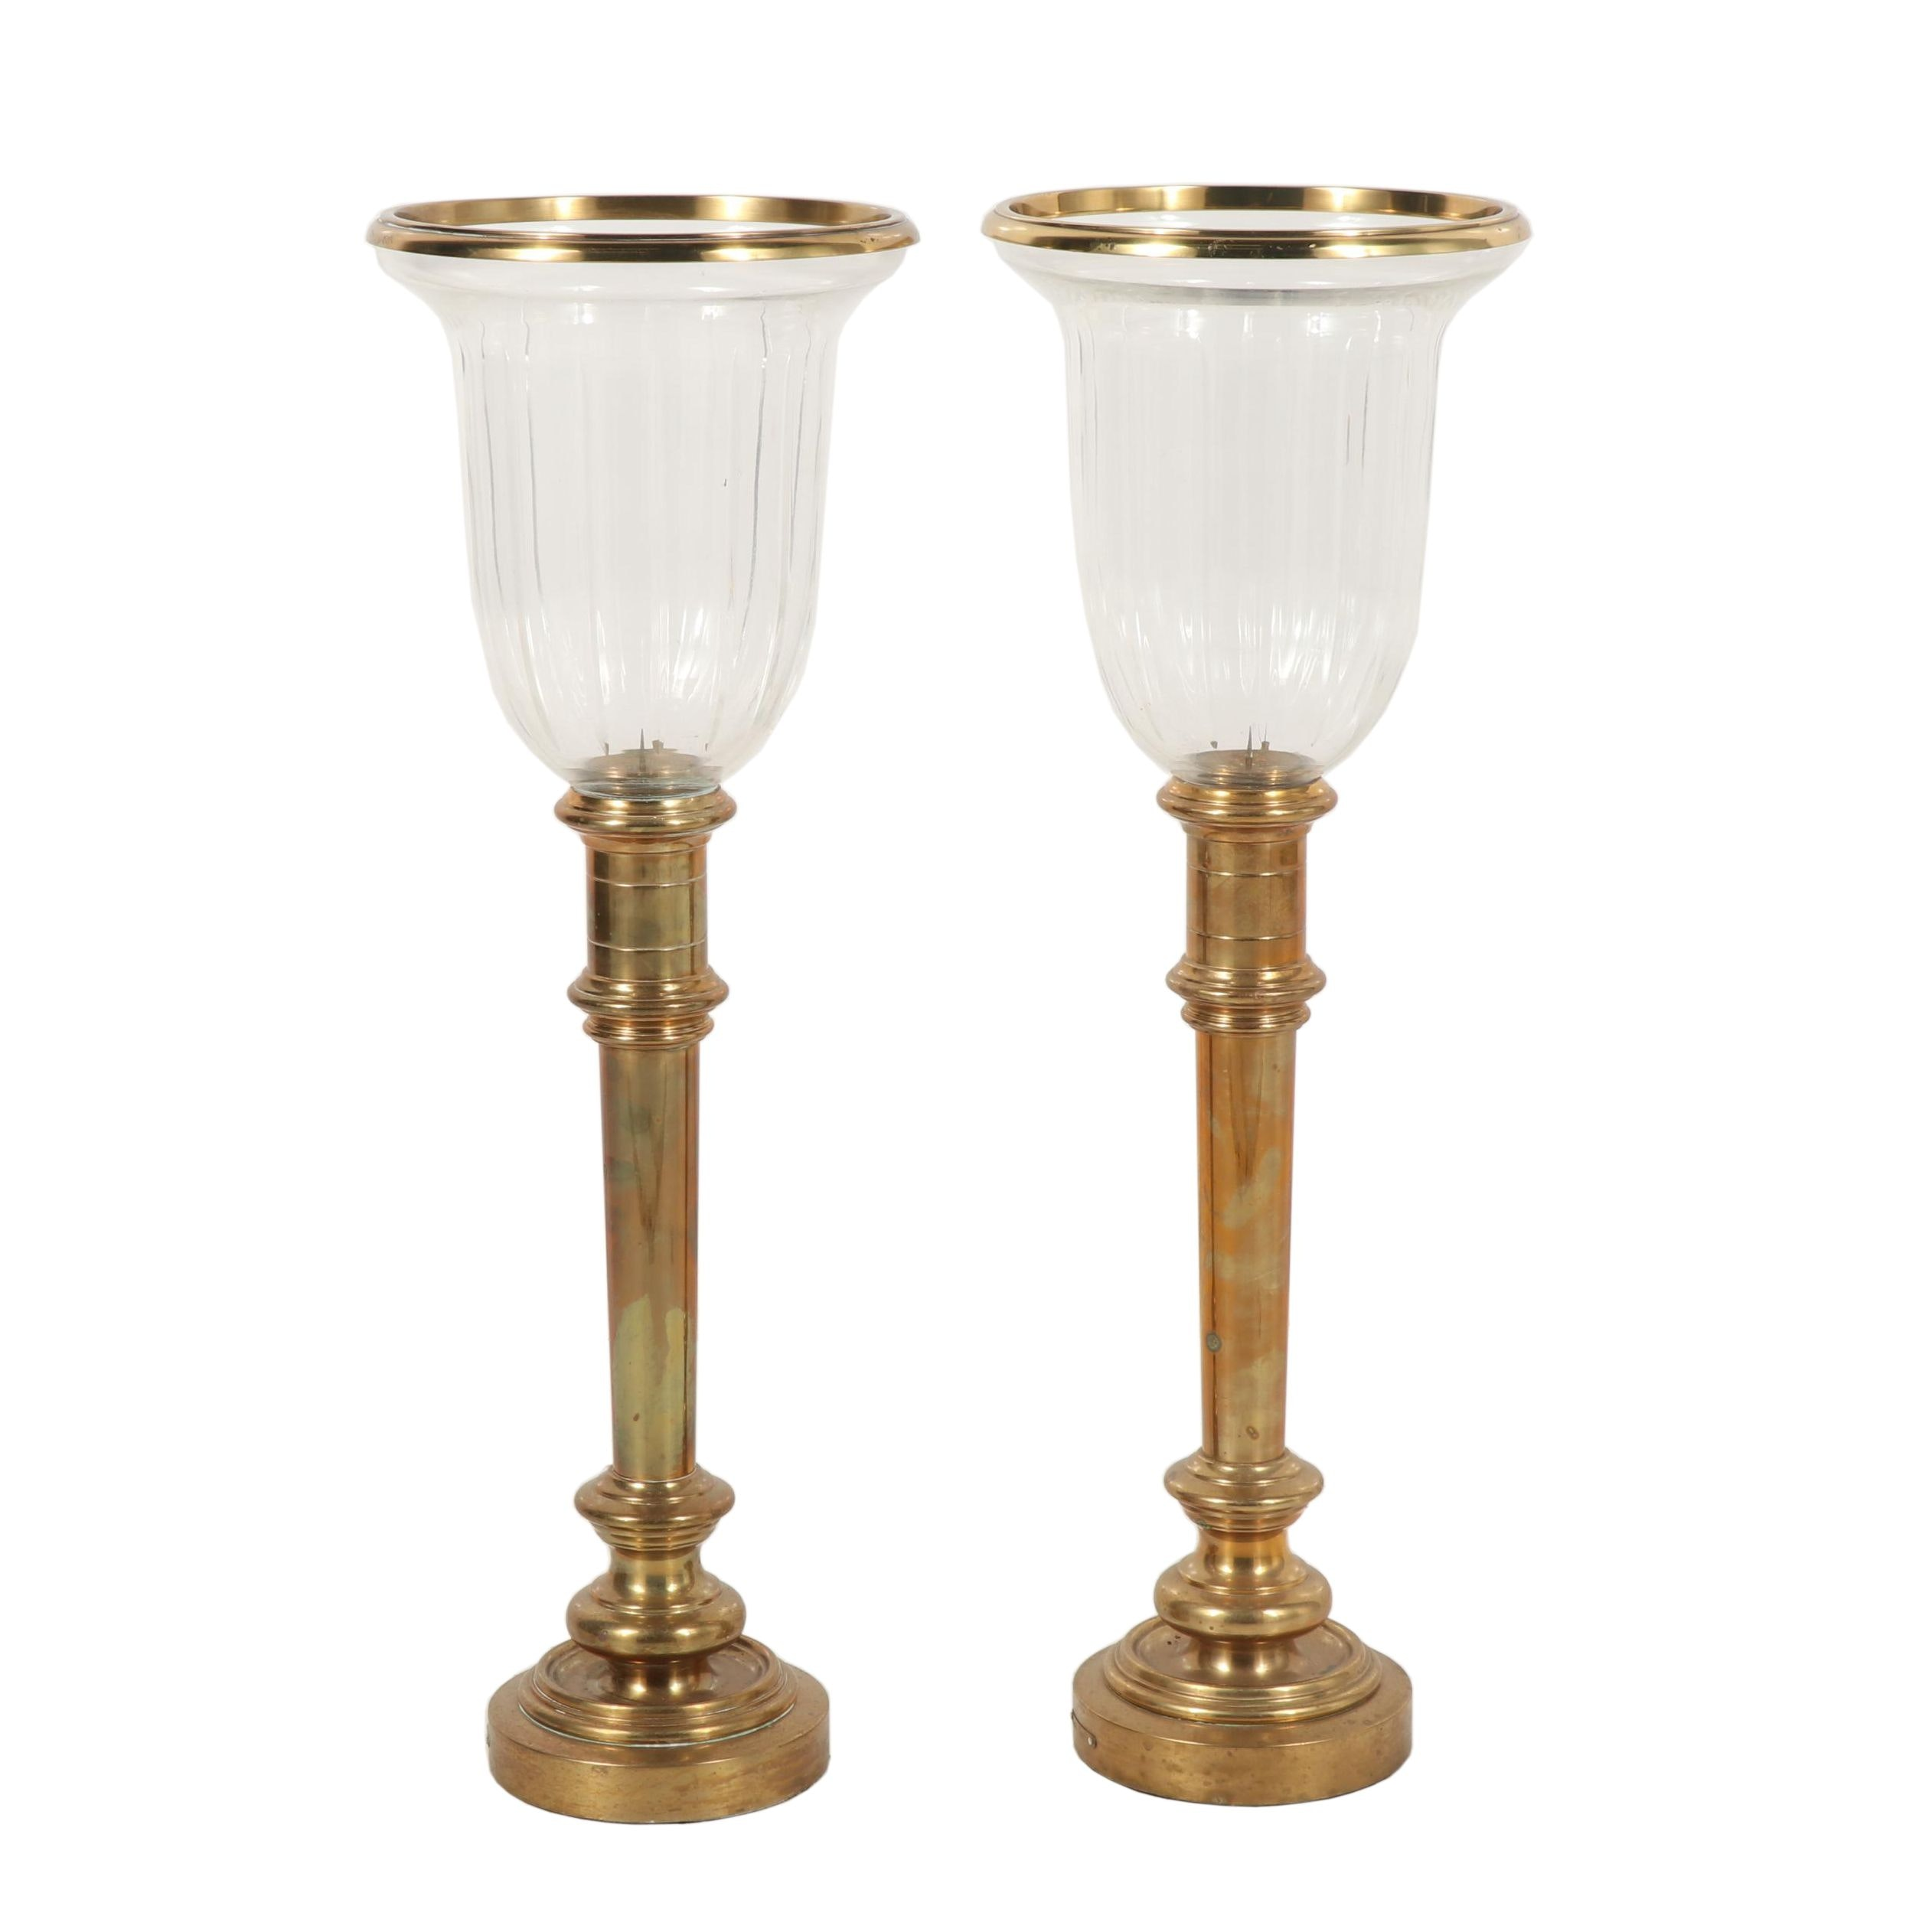 Brass and Glass Torchiere Candle Holders